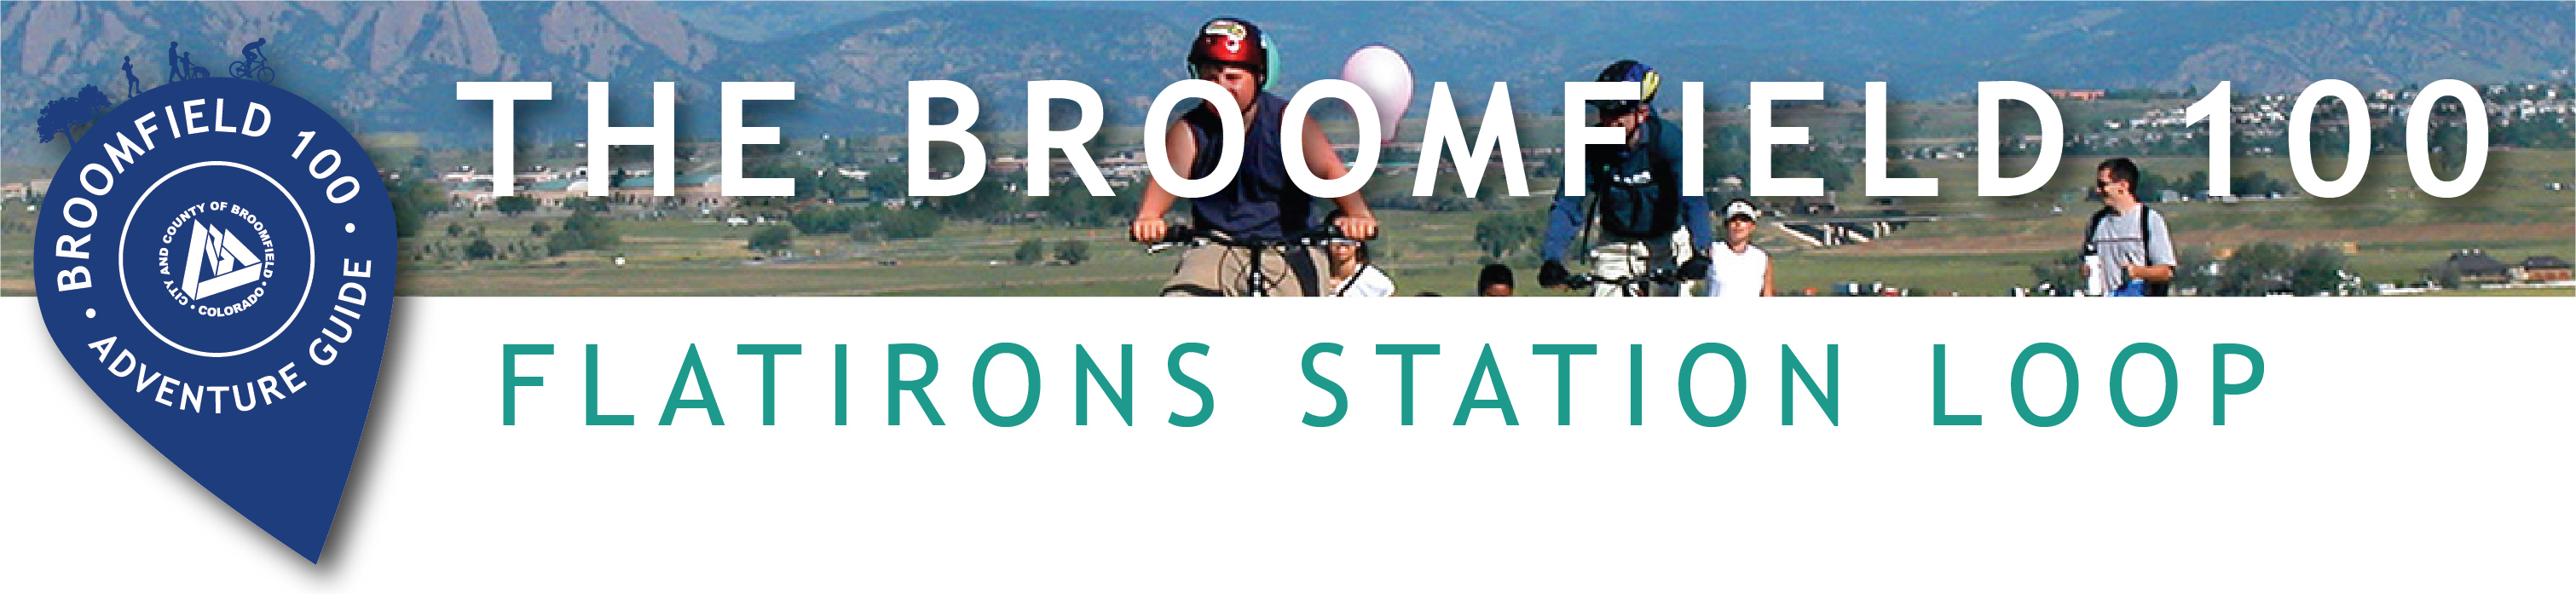 2019 Broomfield100 web banners_flatirons station